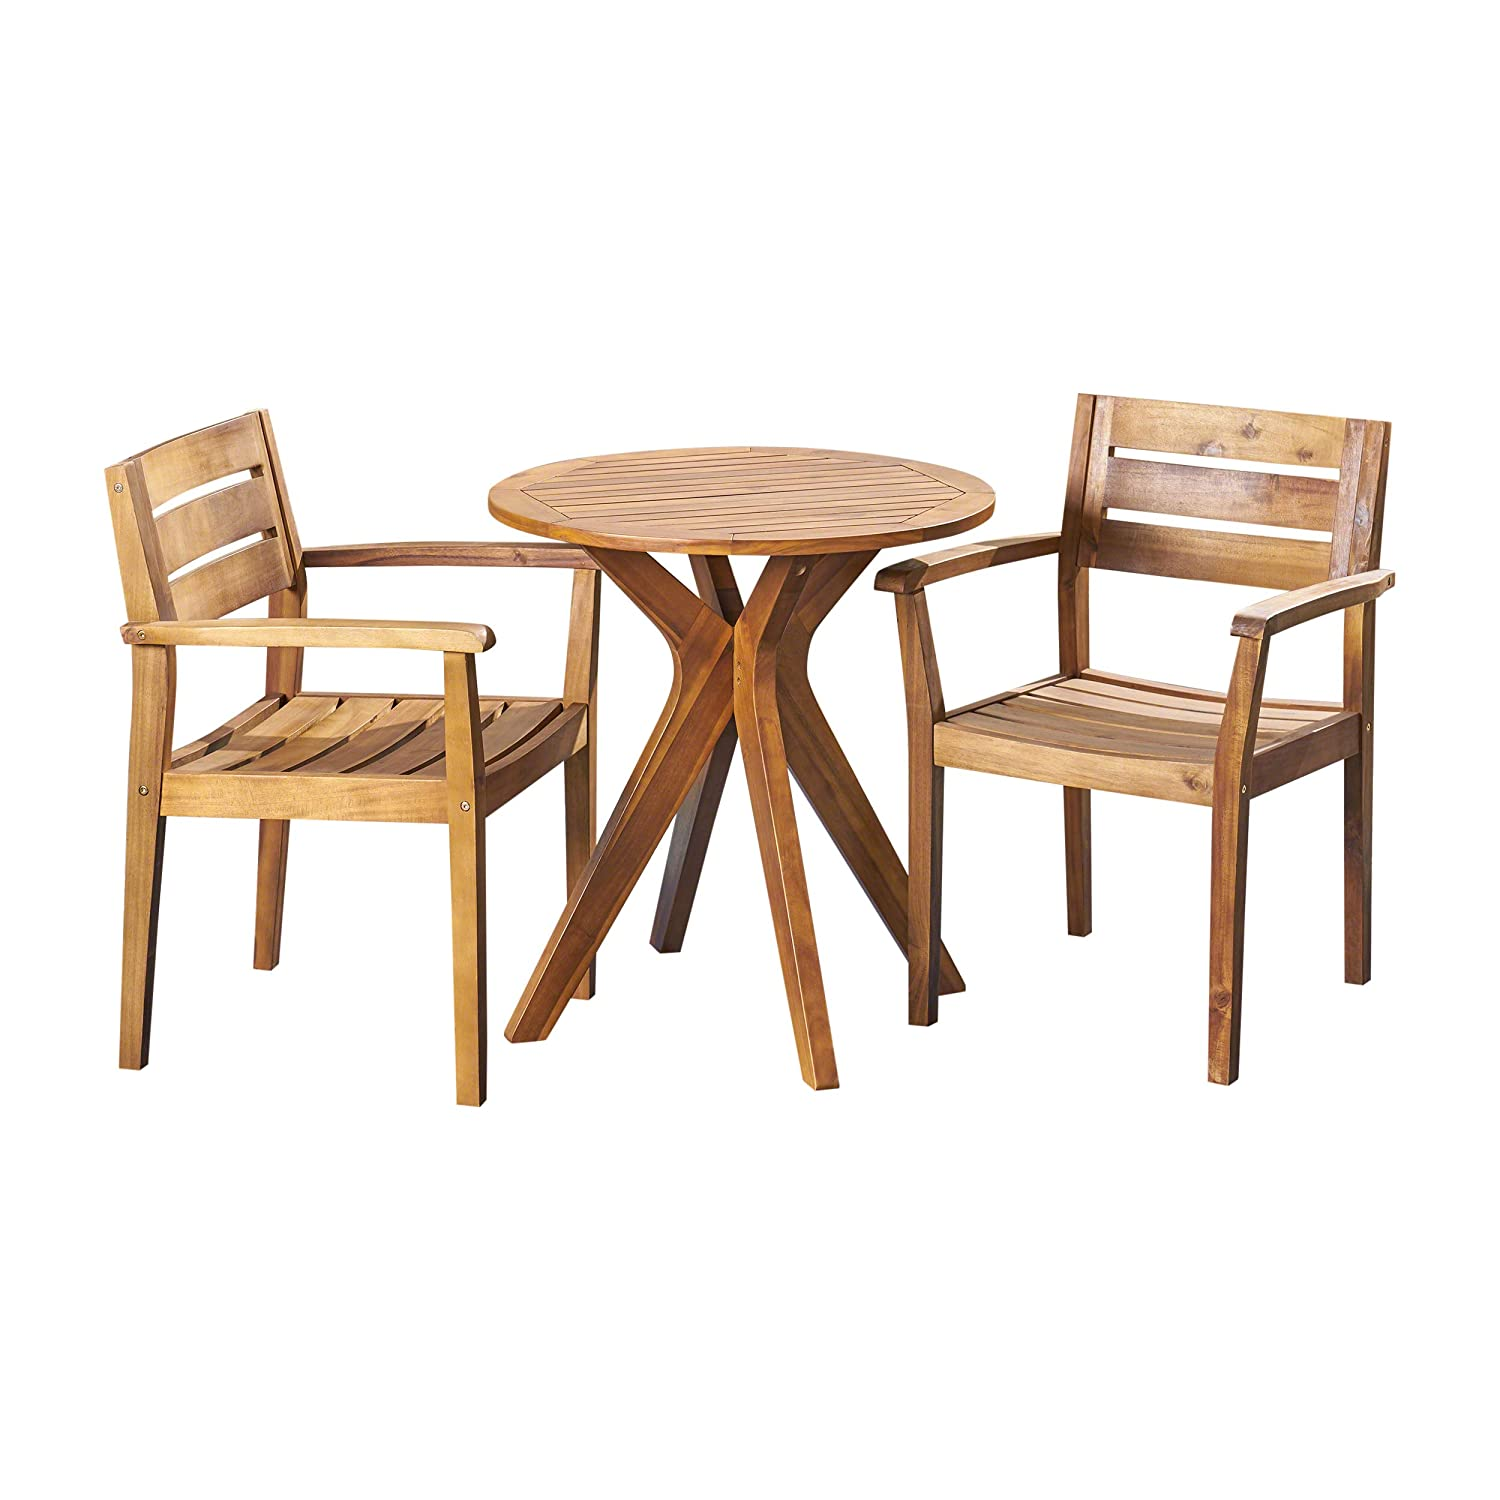 Amazon com great deal furniture addison outdoor 3 piece acacia wood bistro set teak garden outdoor